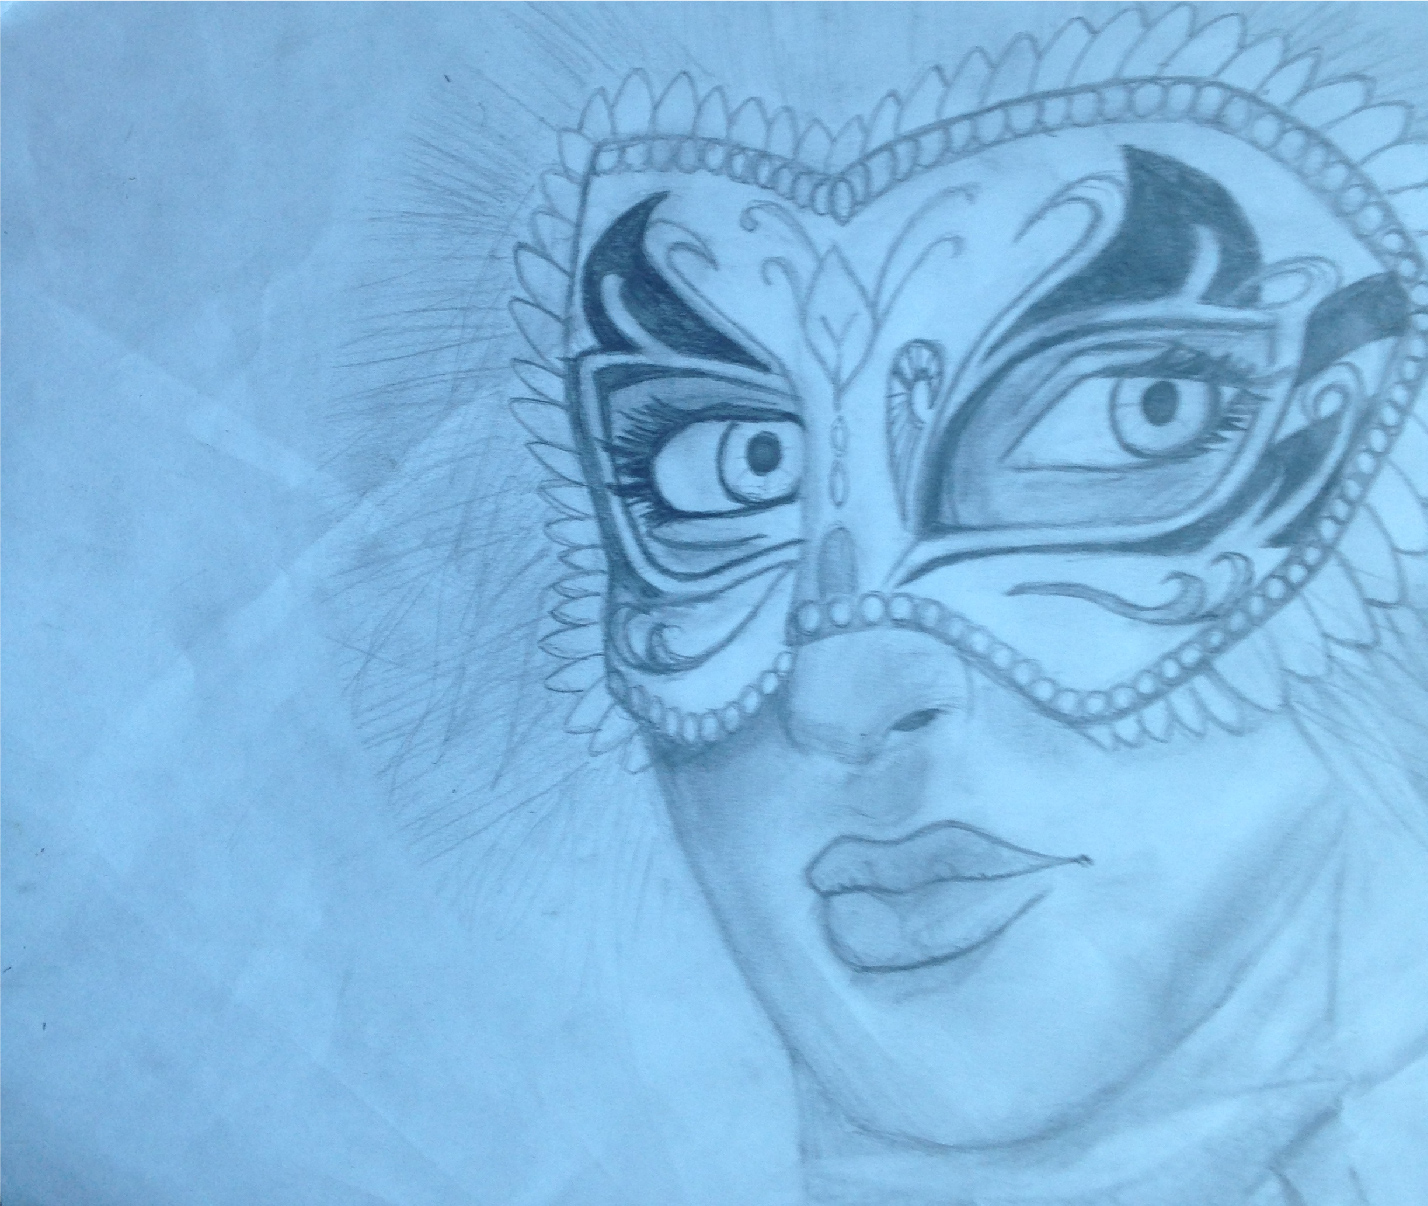 1428x1206 Masquerade Mask Drawing. The Inspiration To Draw This Image Came